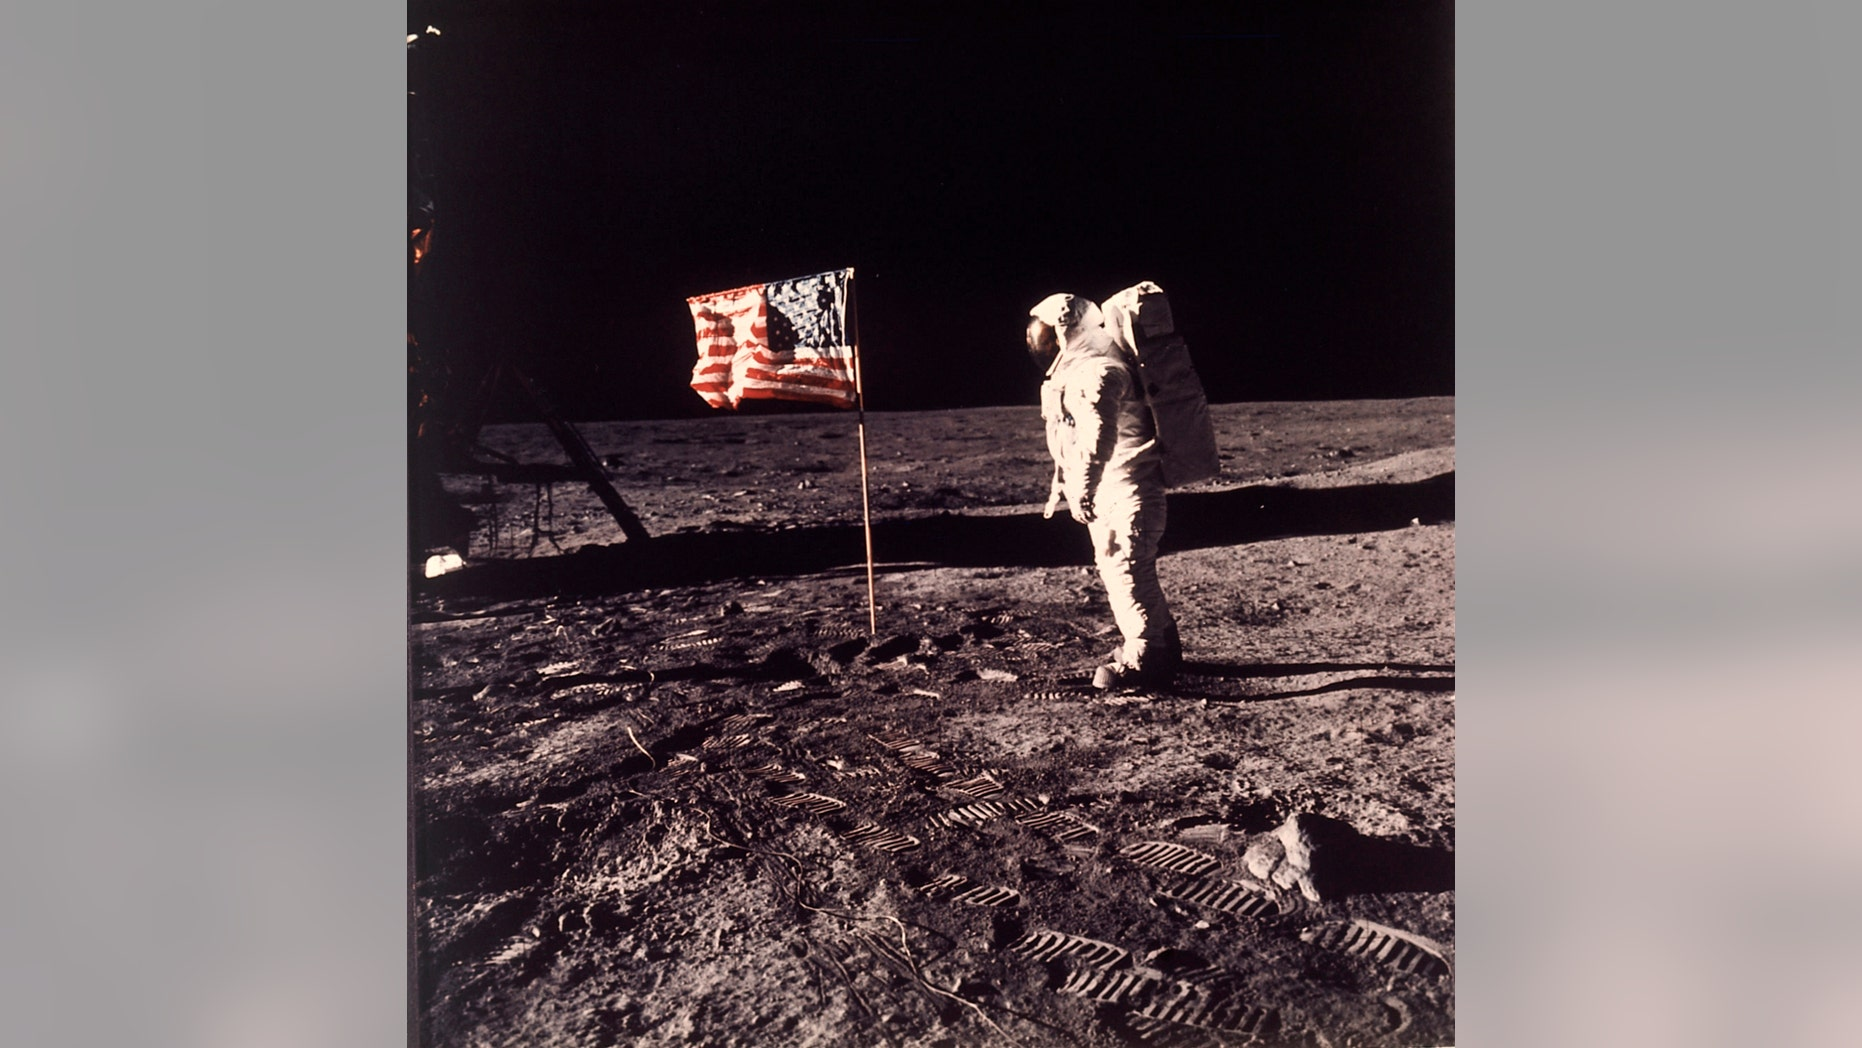 """FILE - In this image provided by NASA, astronaut Buzz Aldrin poses for a photograph next to the US flag, which was stationed on the Moon during the Apollo 1<div class=""""e3lan e3lan-in-post1""""><script async src=""""//pagead2.googlesyndication.com/pagead/js/adsbygoogle.js""""></script> <!-- Text_Display_Responsive --> <ins class=""""adsbygoogle""""      style=""""display:block""""      data-ad-client=""""ca-pub-6192903739091894""""      data-ad-slot=""""3136787391""""      data-ad-format=""""auto""""      data-full-width-responsive=""""true""""></ins> <script> (adsbygoogle = window.adsbygoogle 